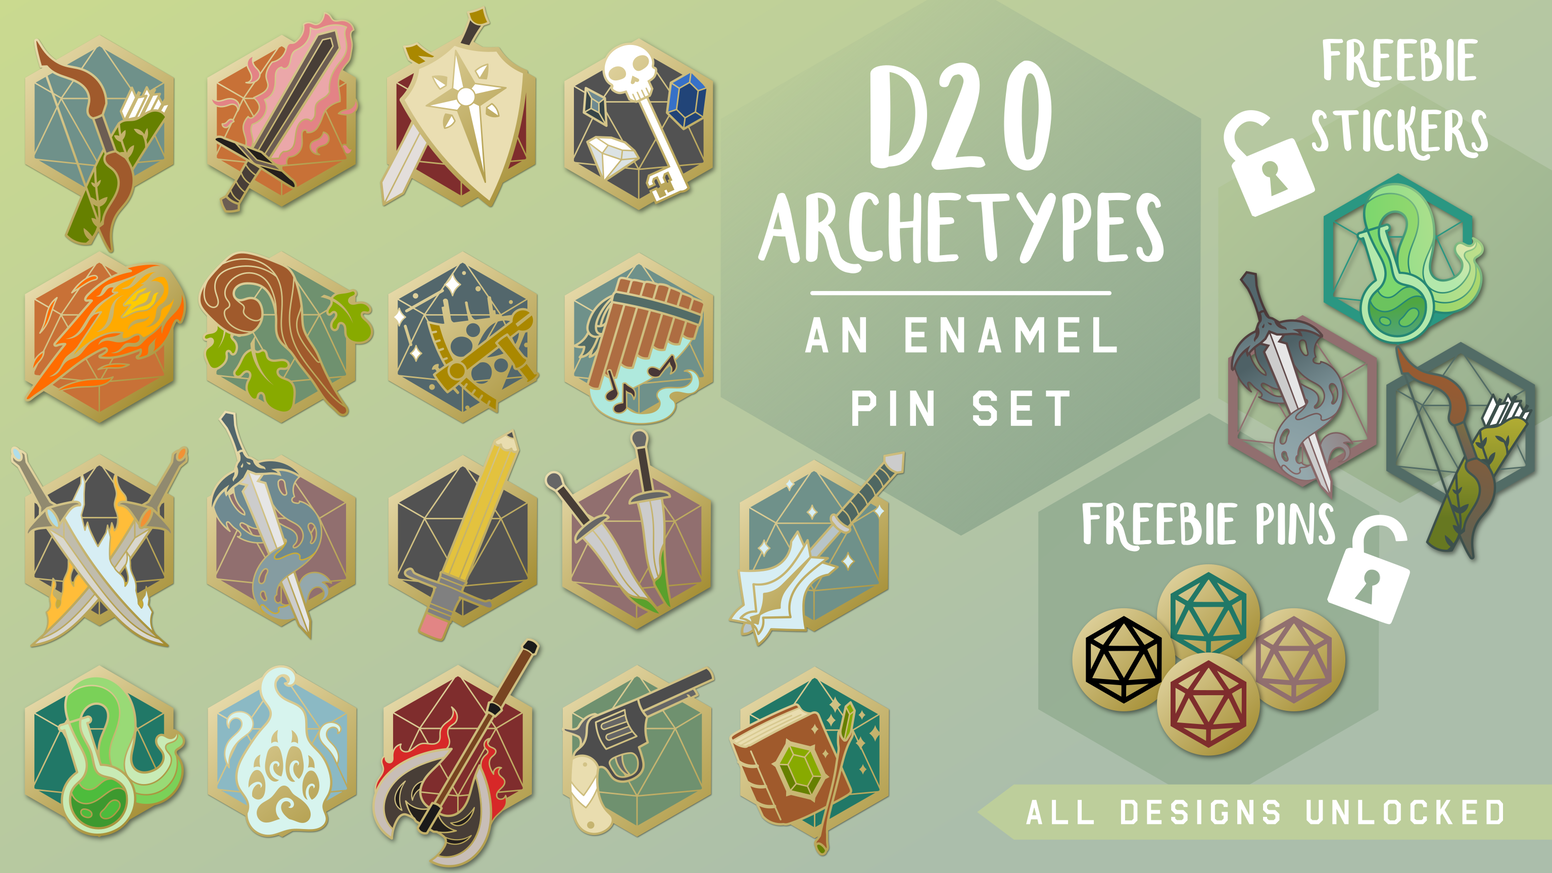 This series of enamel pin designs highlights role-playing game class archetypes for tabletop RPG fans.